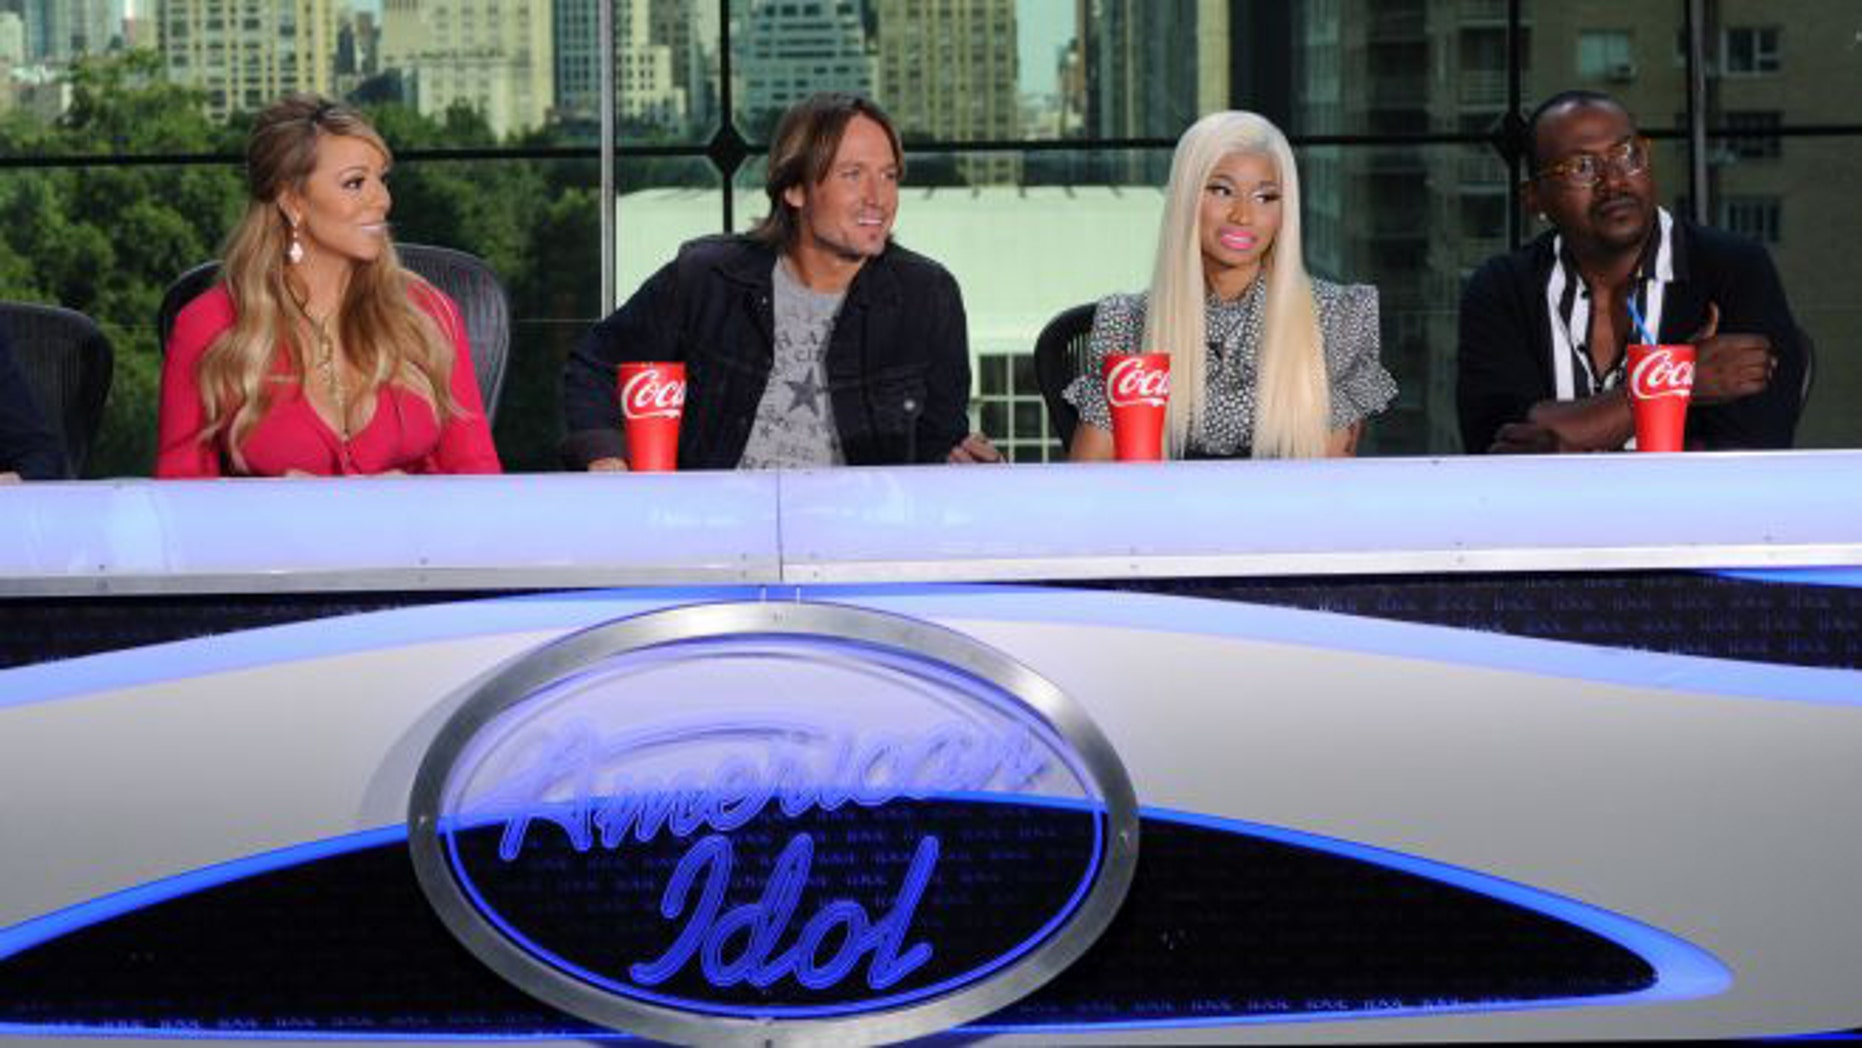 """Sept. 17, 2012: This image released by Fox shows the new judges for the singing competition series """"American Idol."""" From left, Mariah Carey, Keith Urban, Nicki Minaj and Randy Jackson at a news conference in New York City."""